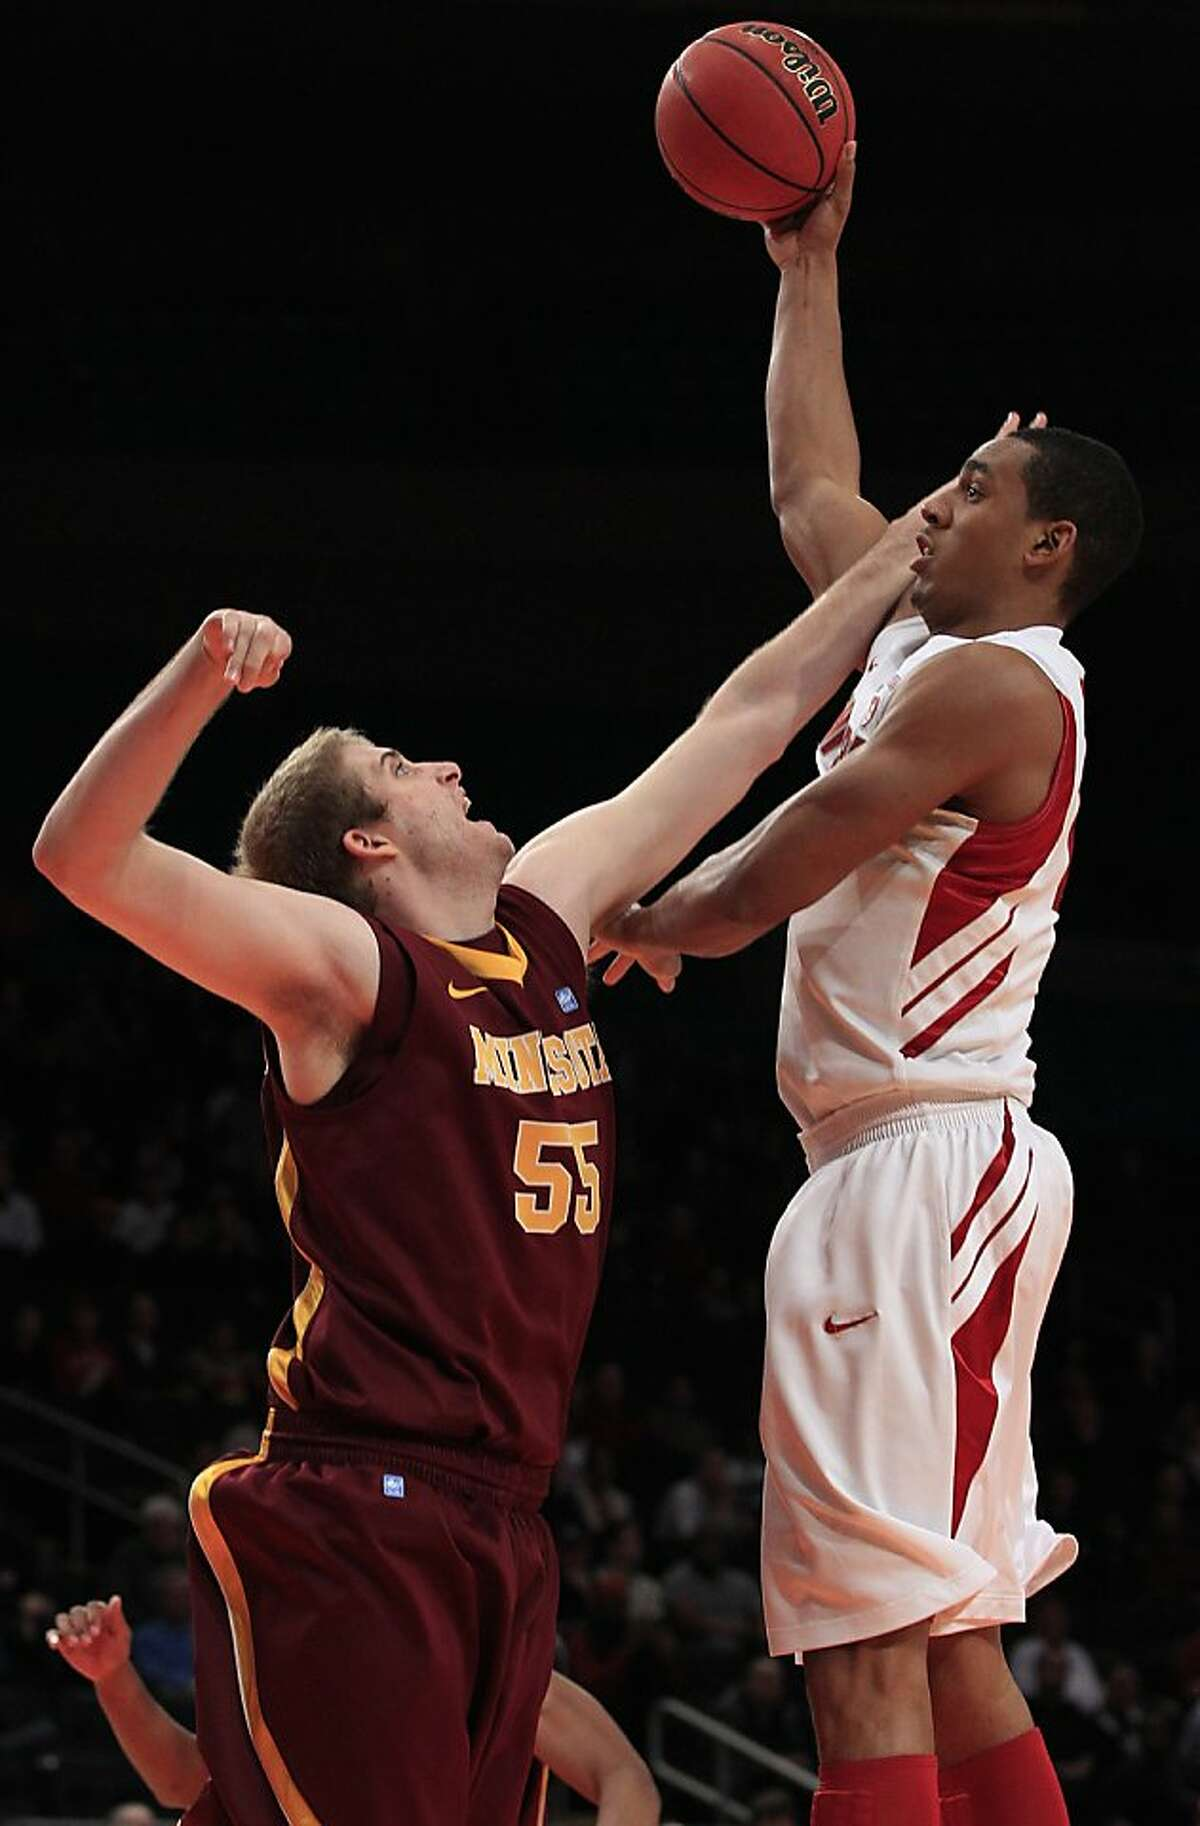 Stanford's Josh Owens, right, shoots ove Minnesota's Elliott Eliason (55) during the first half of the NIT college basketball tournament final on Thursday, March 29, 2012, in New York.